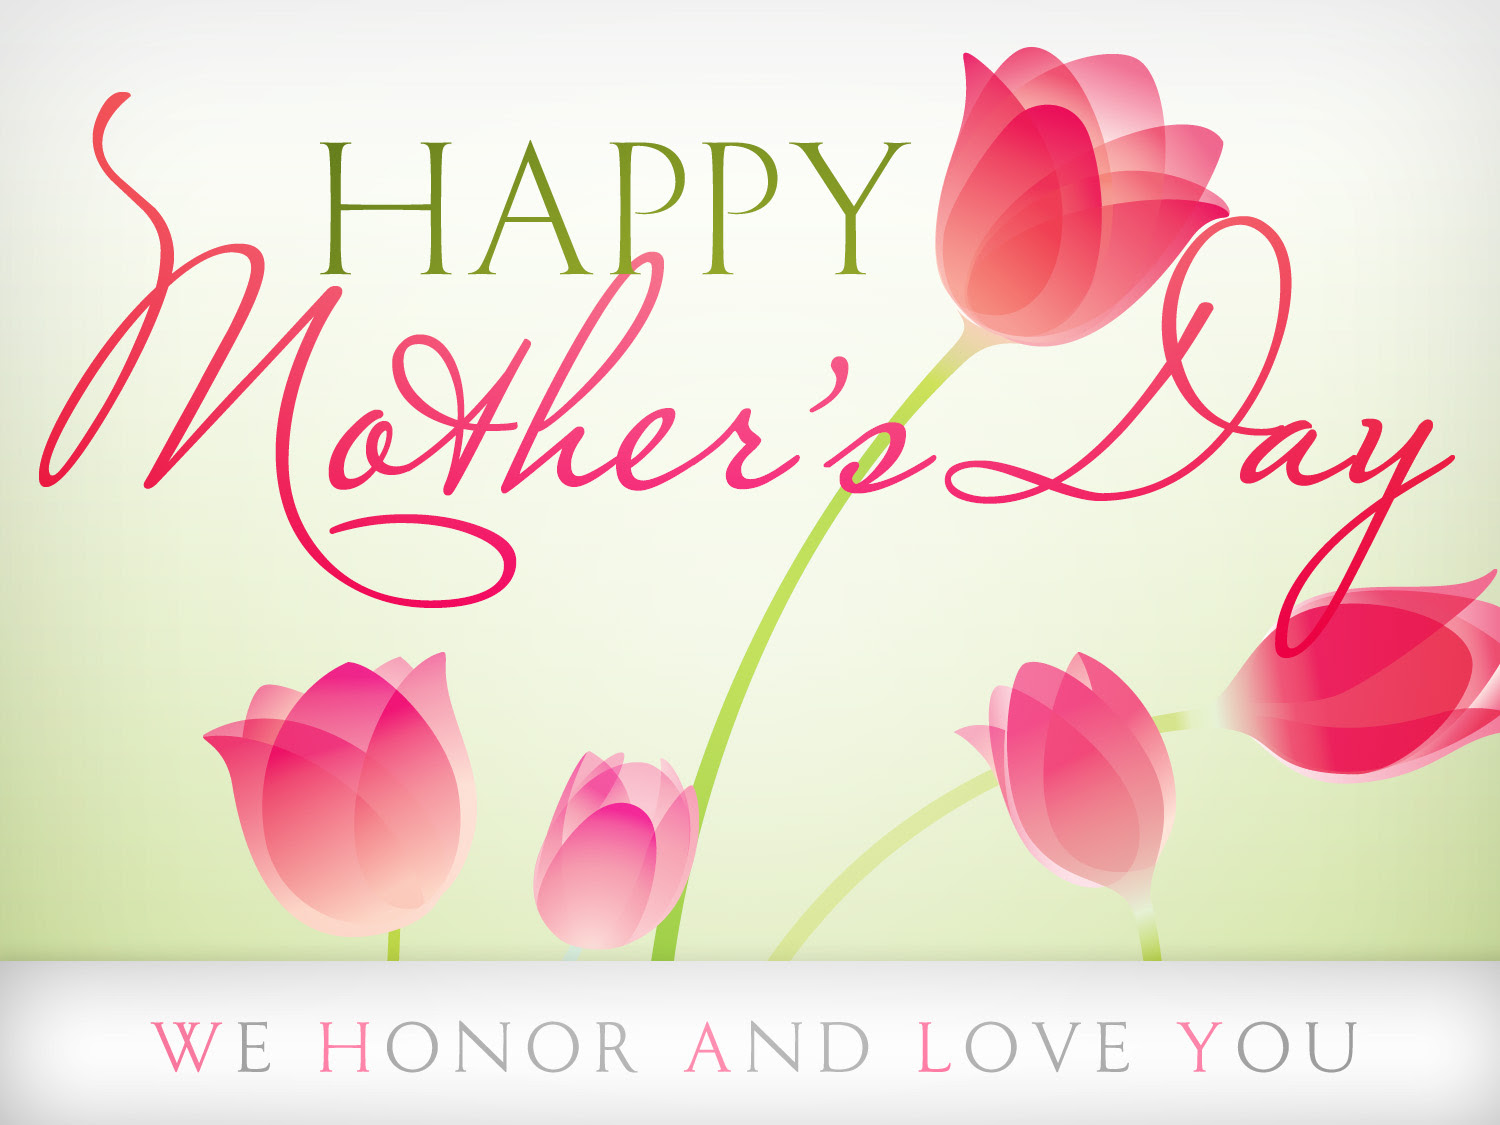 Happy Mothers Day Wishes And Quotes To Thank Your Mother